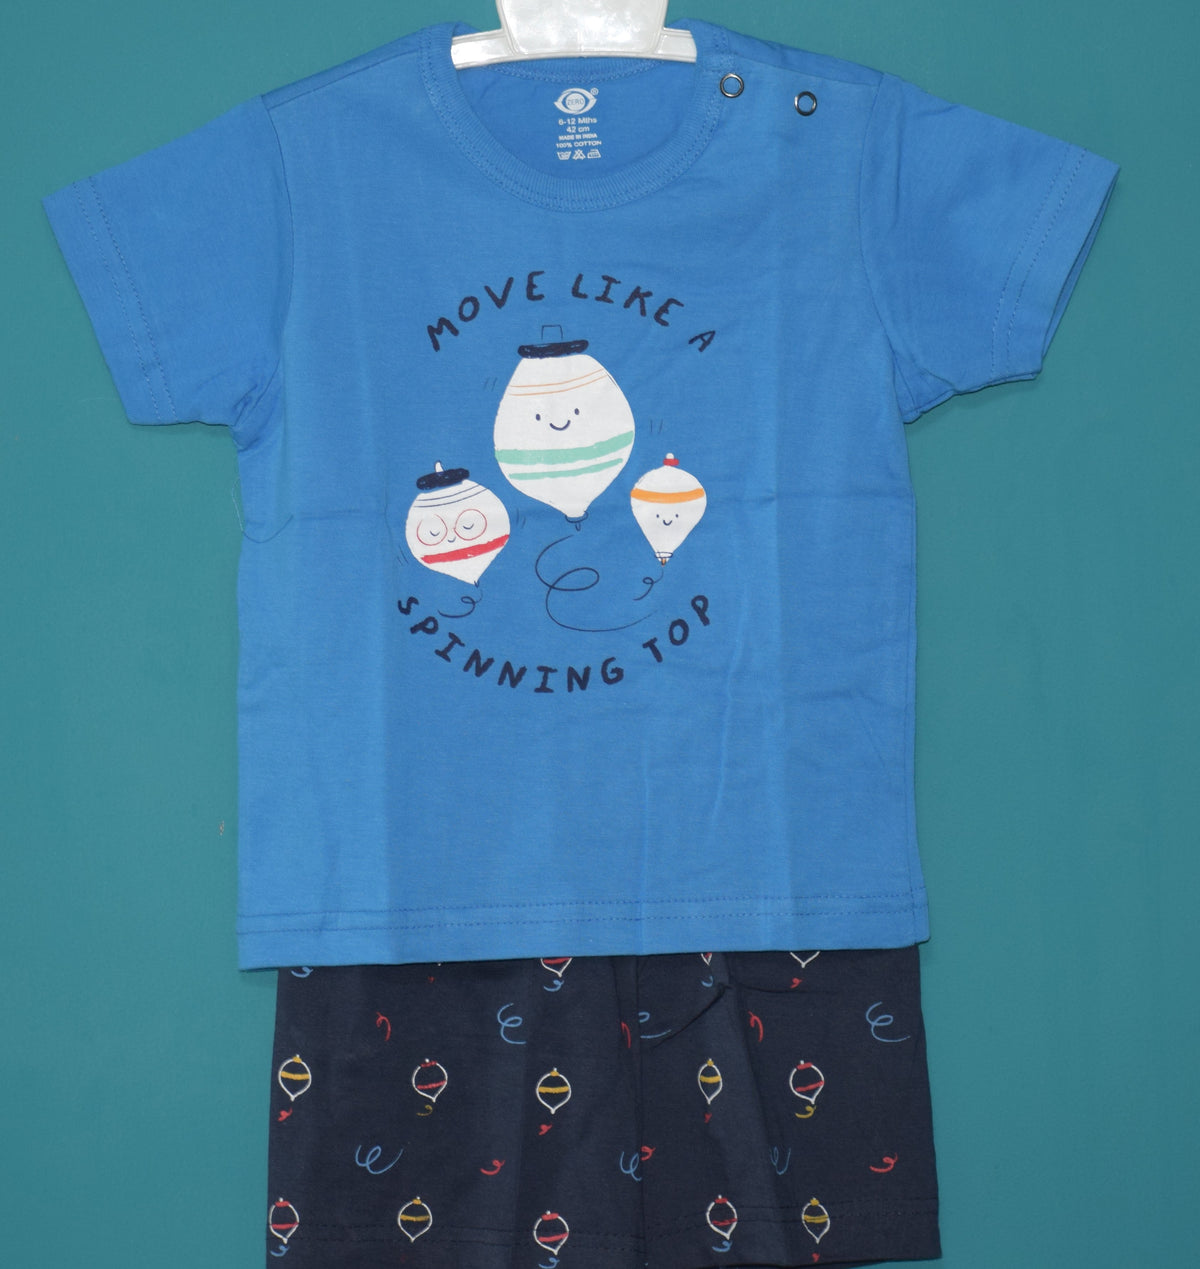 T-Shirt and Pant-Spinning Top-100% Cotton-Unisex